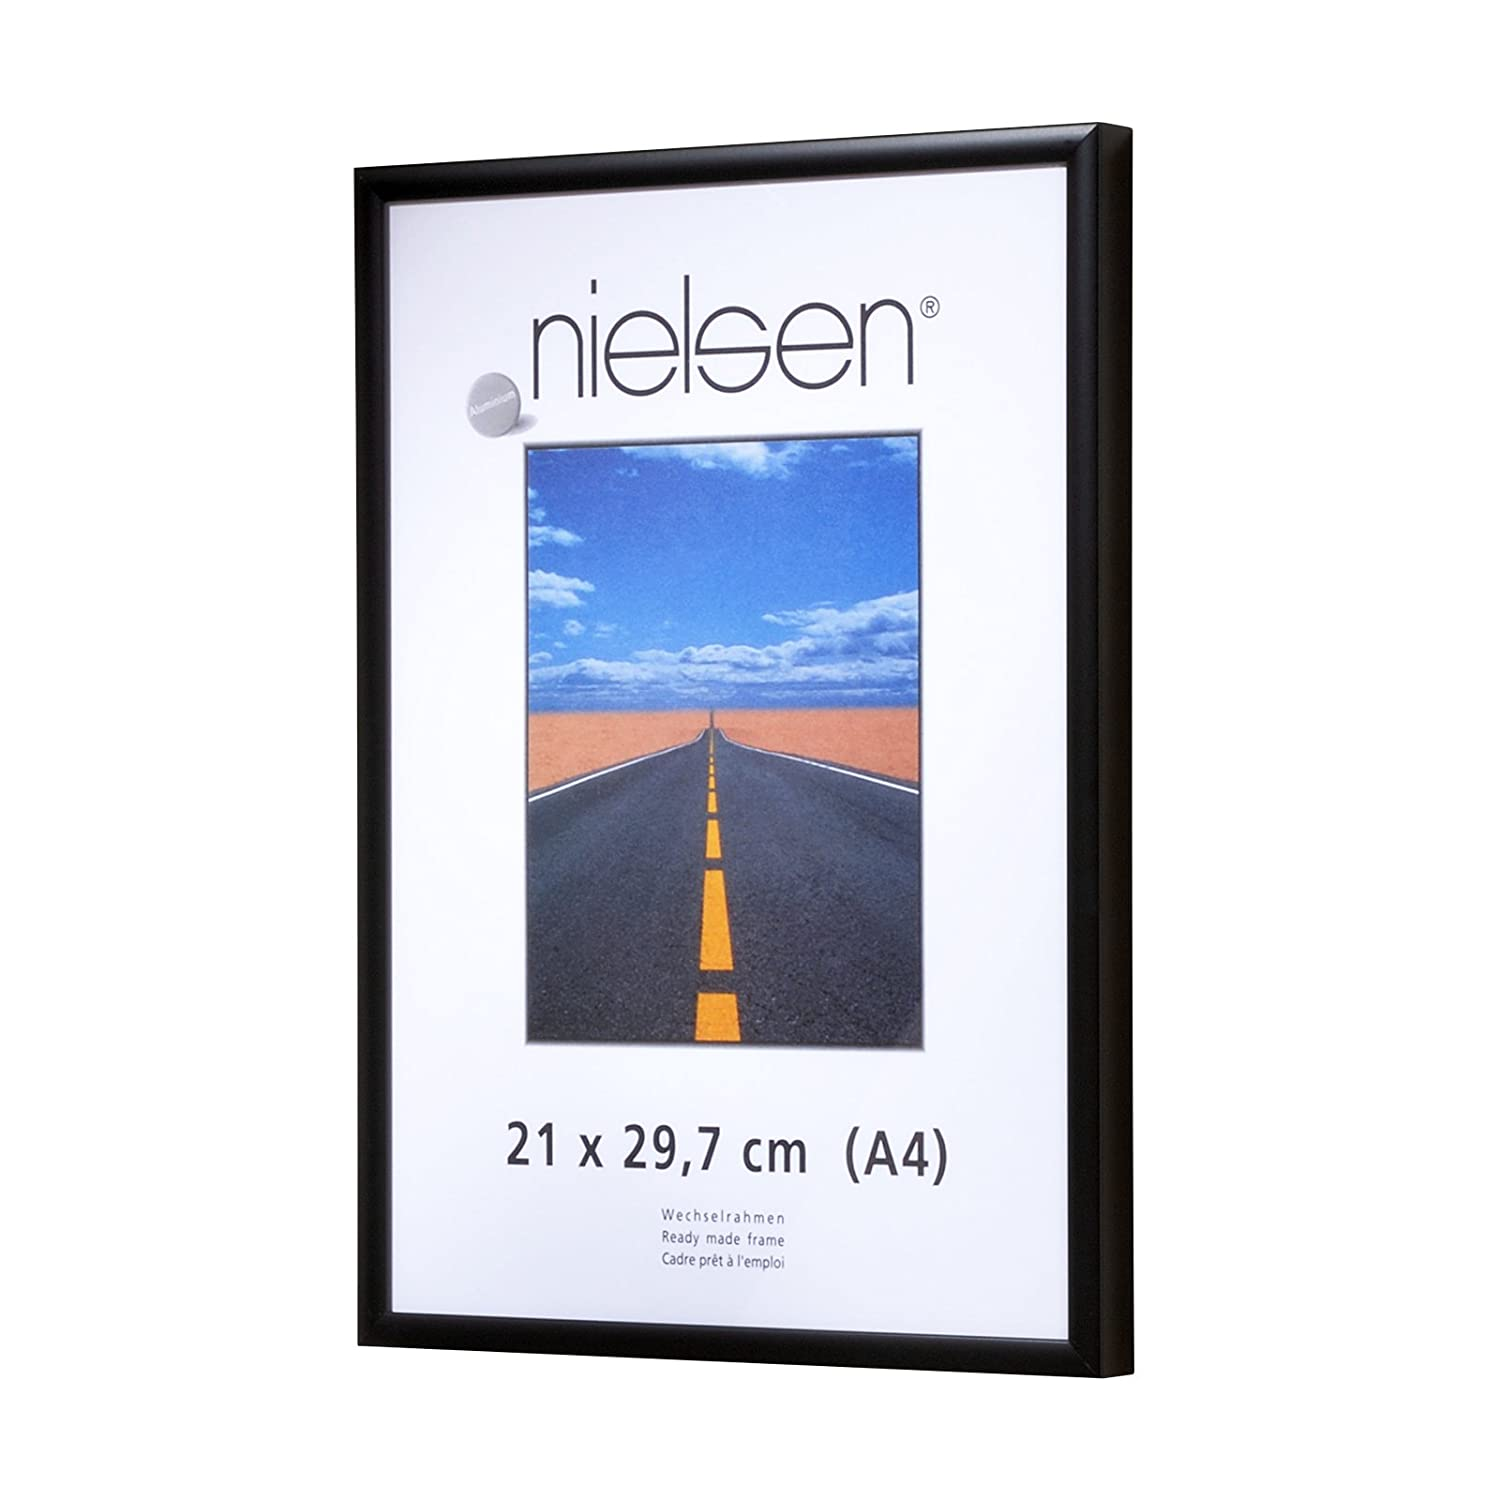 Nielsen Pearl Matt Black Plastic Glass A0/ 84 x 118 cm: Amazon.co.uk ...